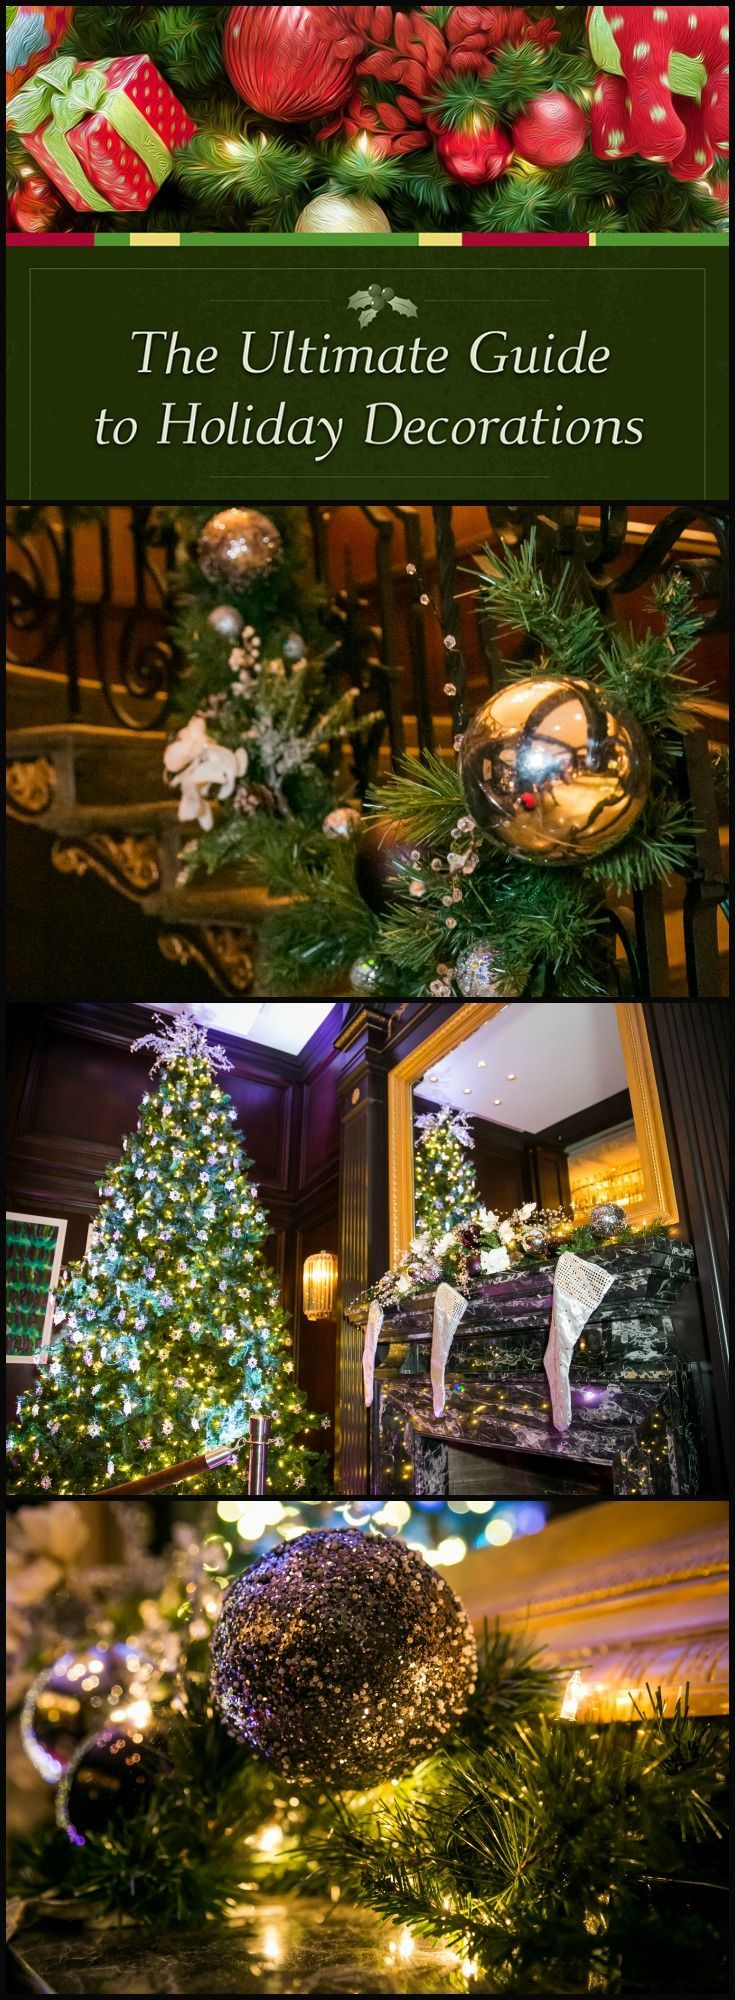 tips from professional designers the ultimate guide to holiday decorations http - How To Decorate Your Christmas Tree Like A Professional Designer